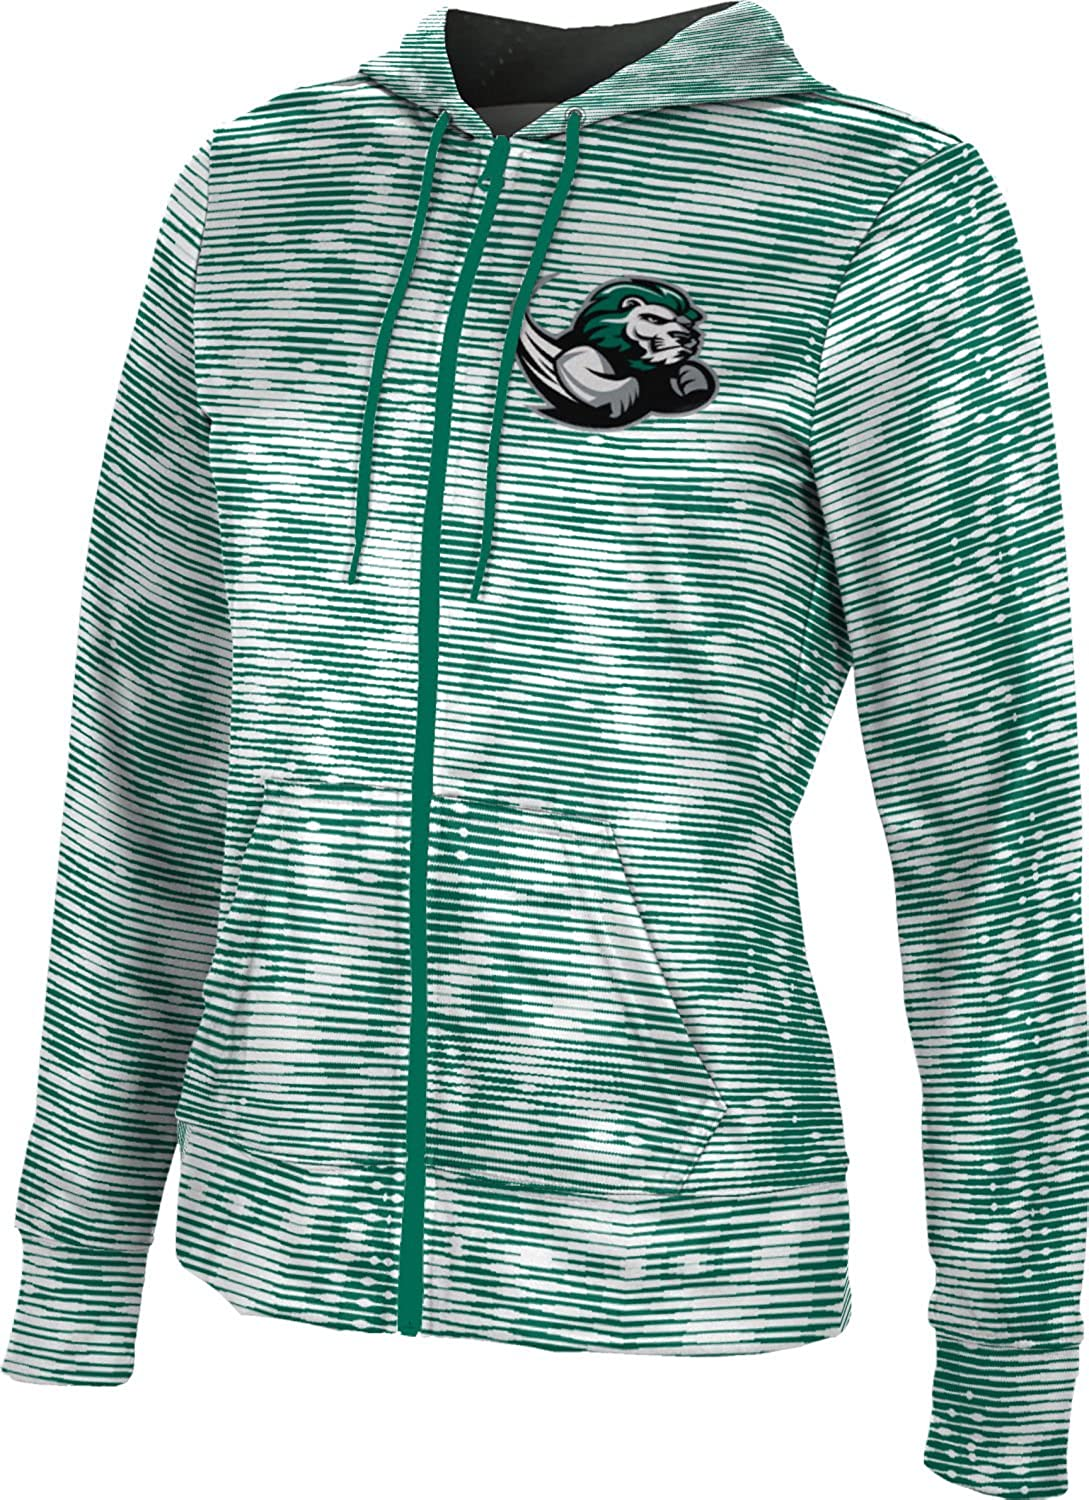 Slippery Rock University Girls Zipper Hoodie Velocity School Spirit Sweatshirt